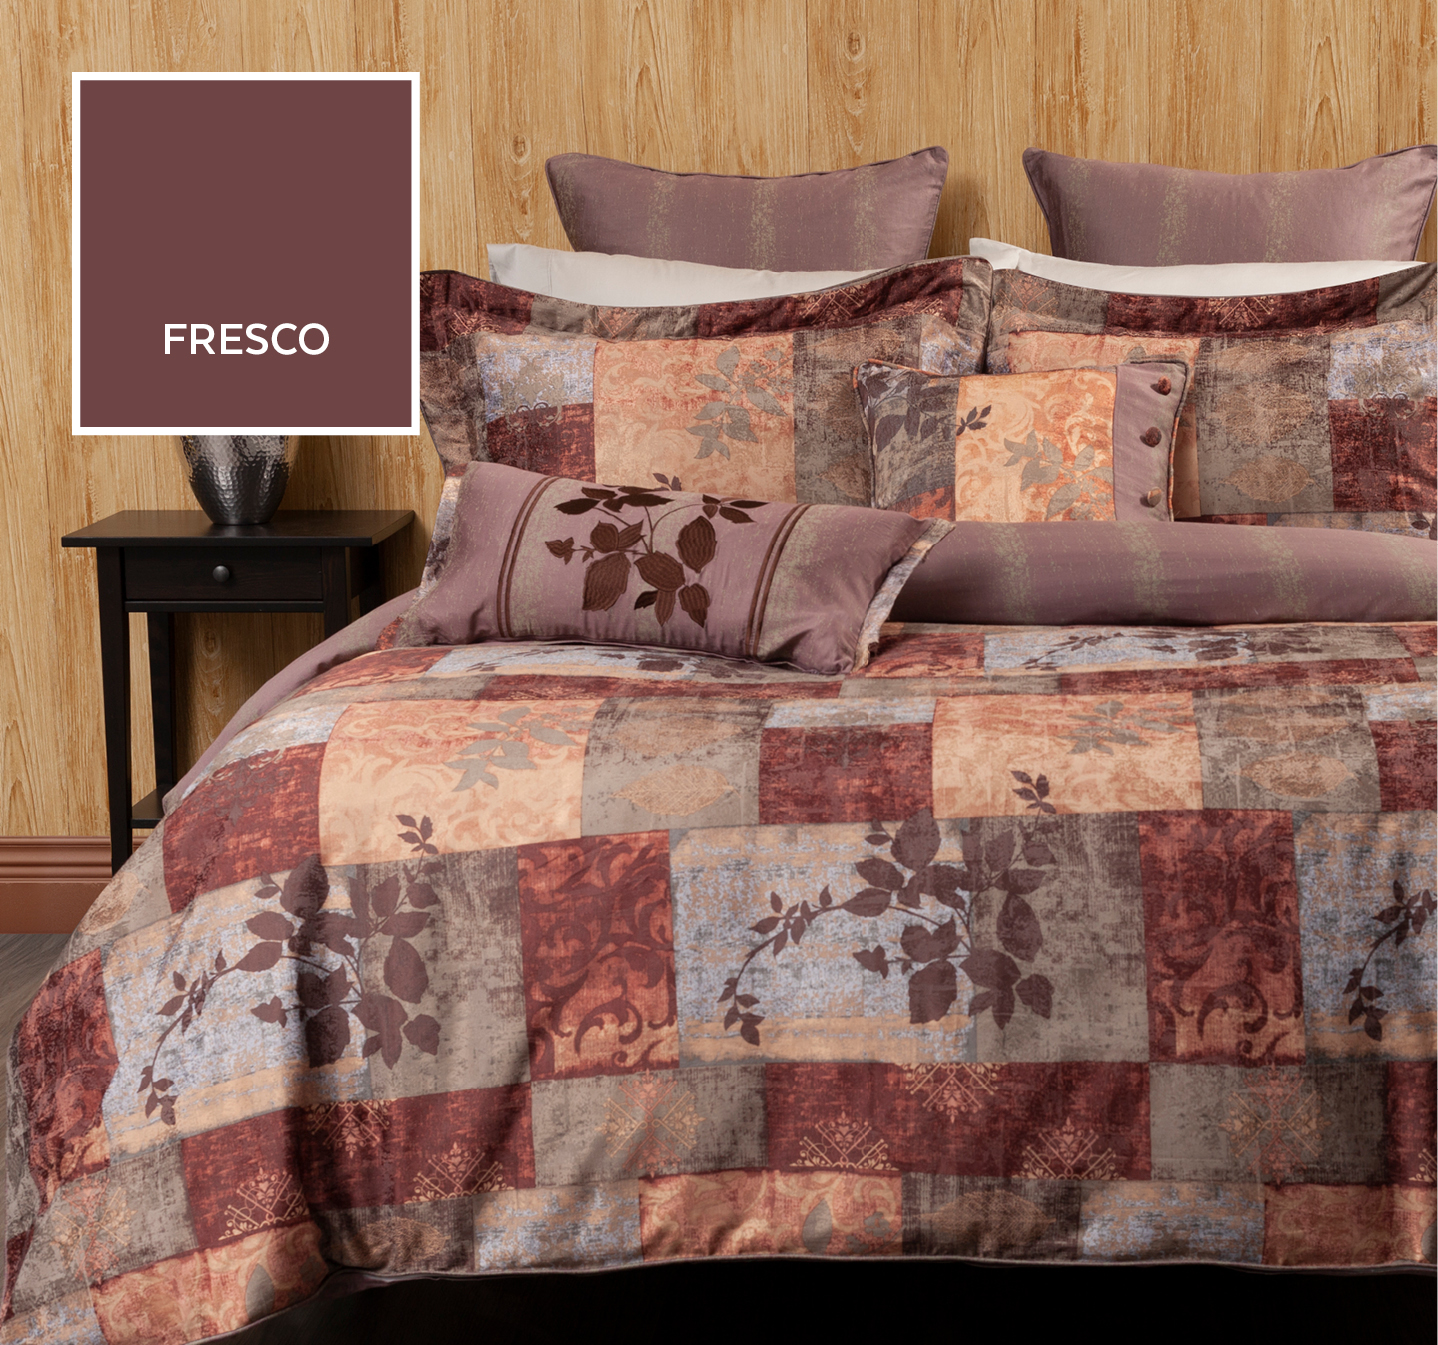 Fresco Duvet Cover with Brown and Taupe Print